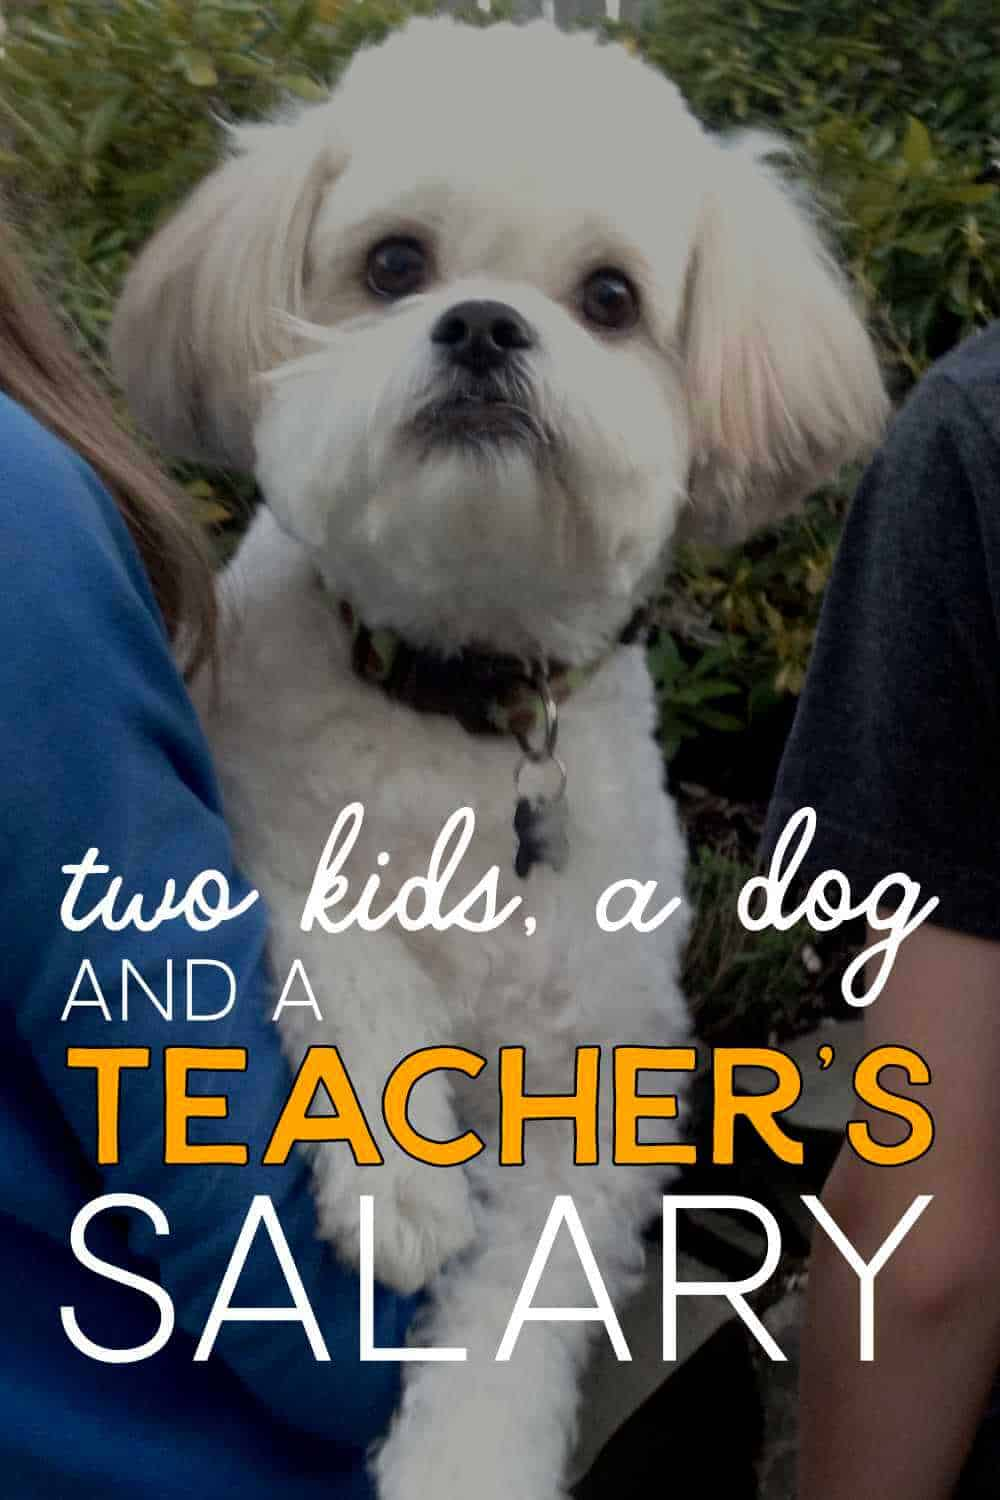 Two kids, a dog, and a teacher's salary.